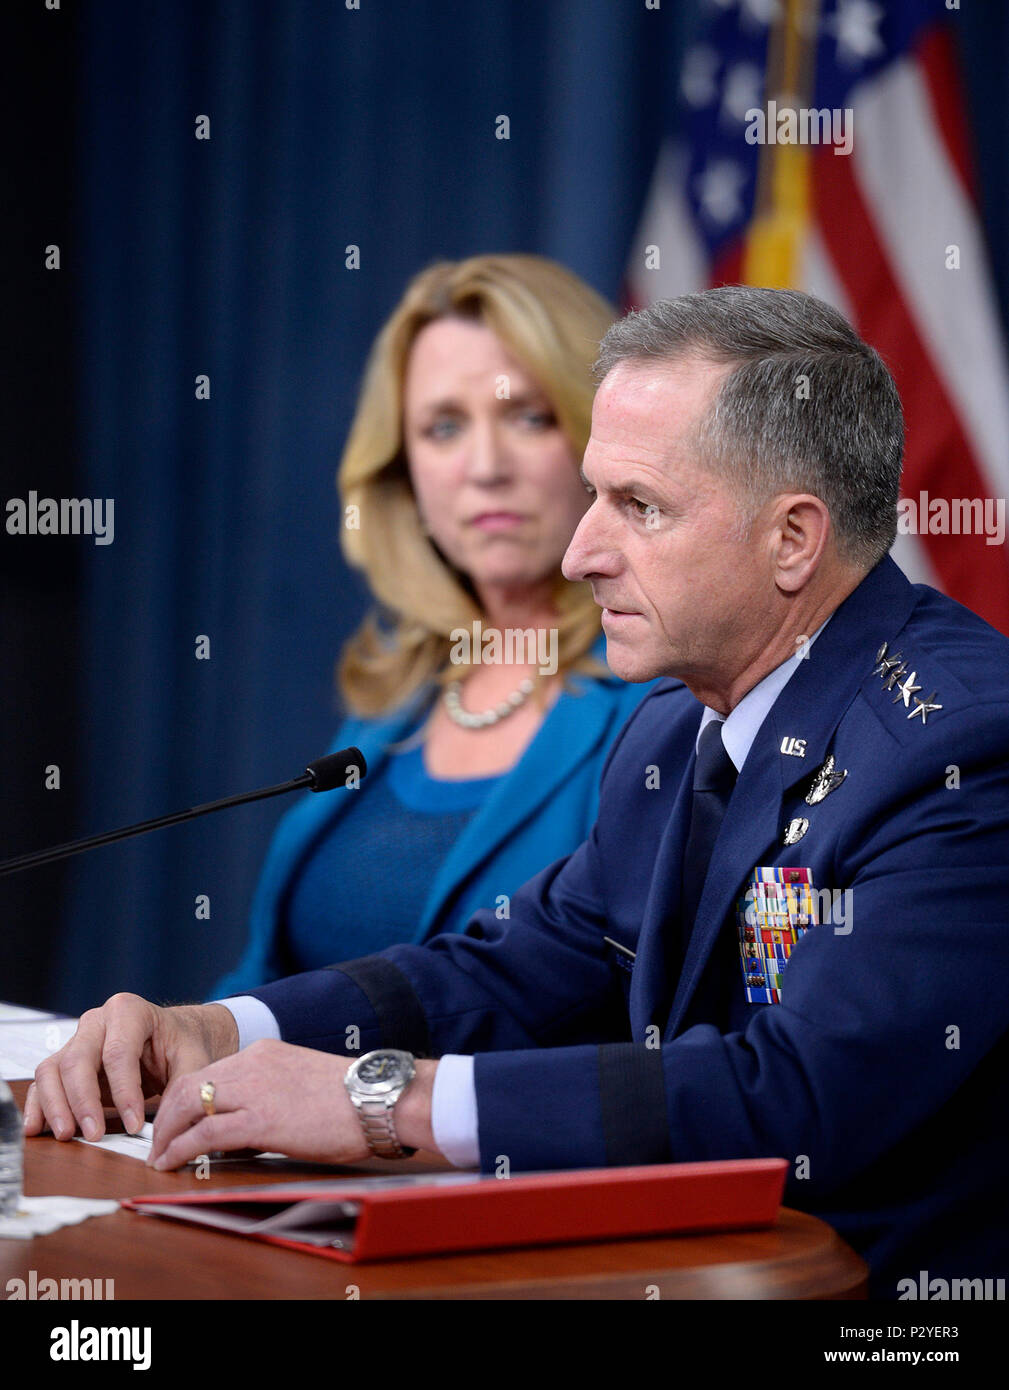 Air Force Chief of Staff Gen. David Goldfein, with Secretary of the Air Force Deborah Lee James, answers a question during the 'State of the Air Force' press conference, in the Pentagon, Aug. 10, 2016.  Goldfein stated, 'Airpower has become the oxygen the joint force breathes.  Have it and you don't even think about it.  Don't have it . . . and it is all you think about.'  (U.S. Air Force photo/Scott M. Ash) - Stock Image